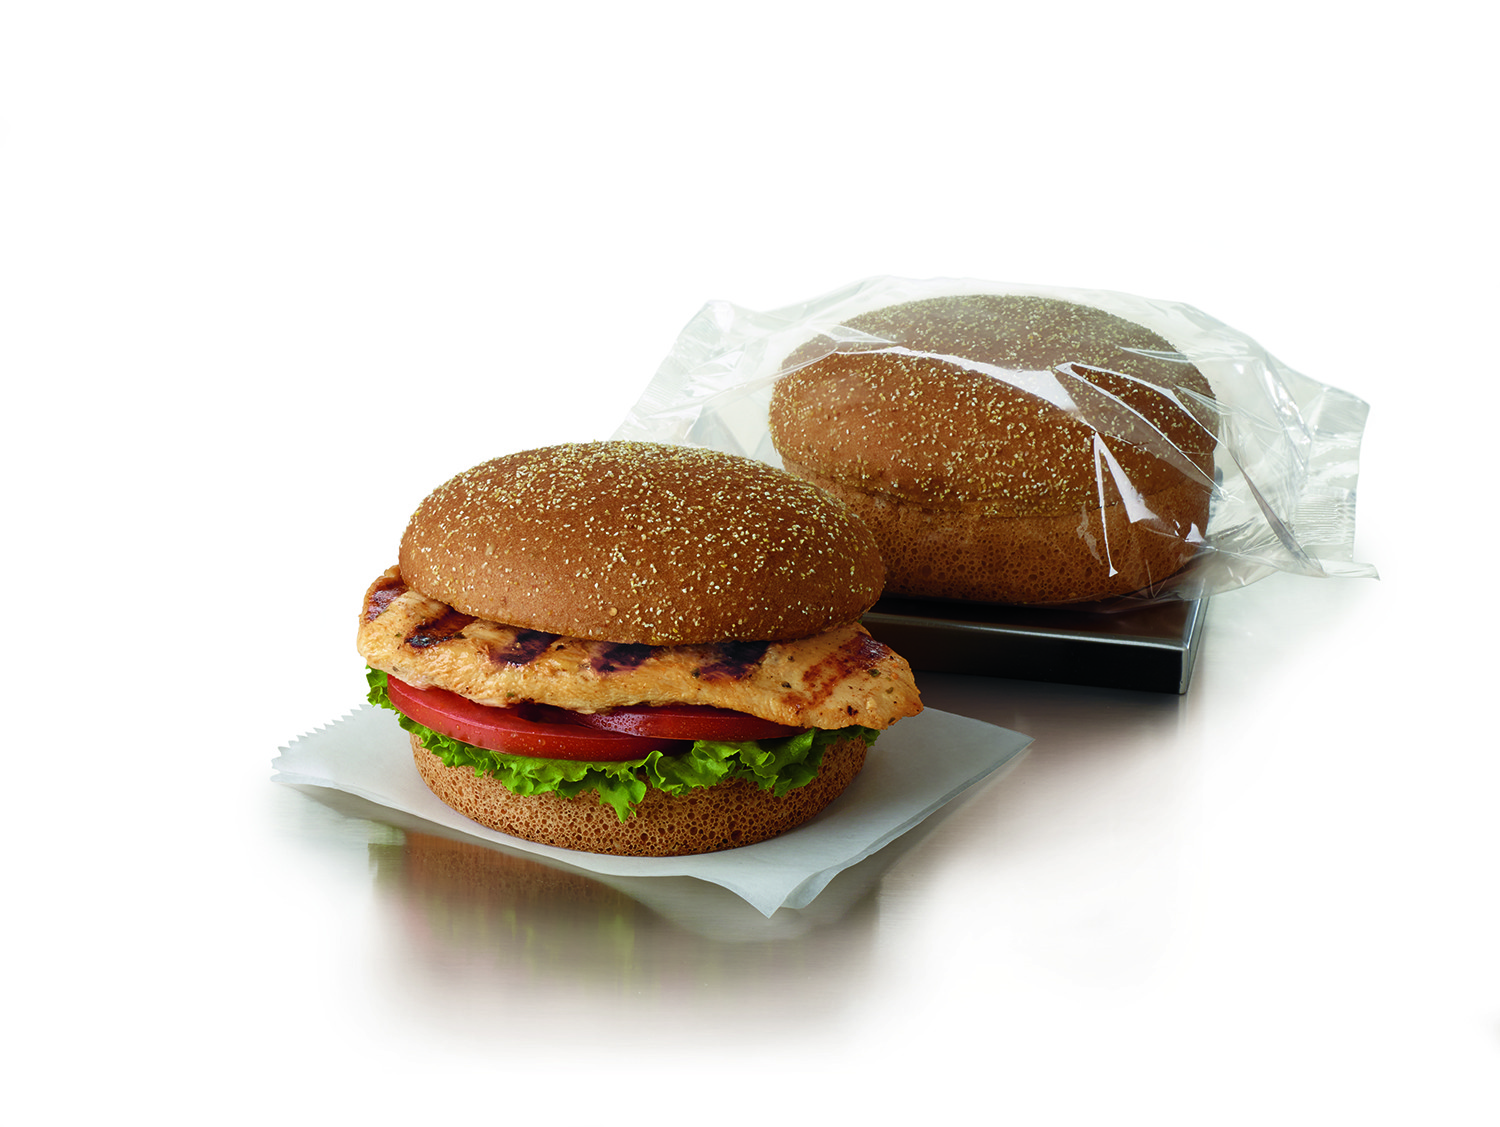 pics Gluten-Free Fast Food: What Are Your Options